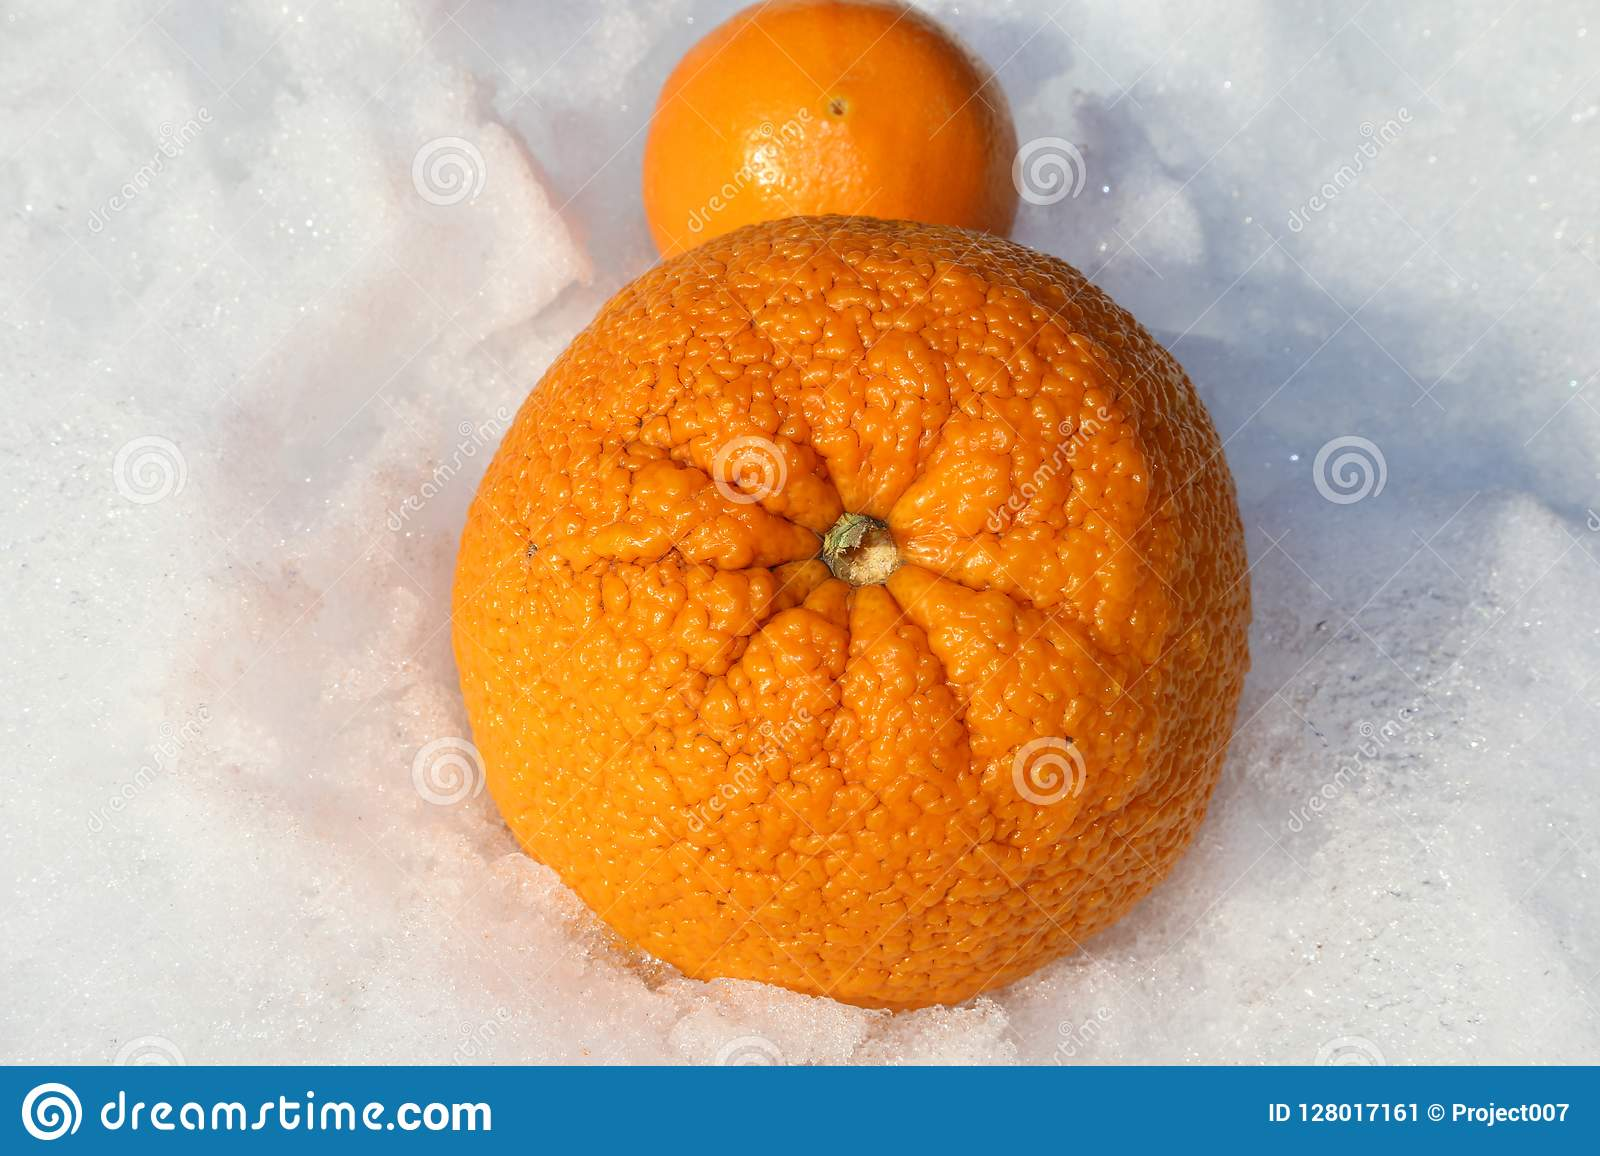 Vitamin C- Oranges And Cold And Flu Season Story Stock Image